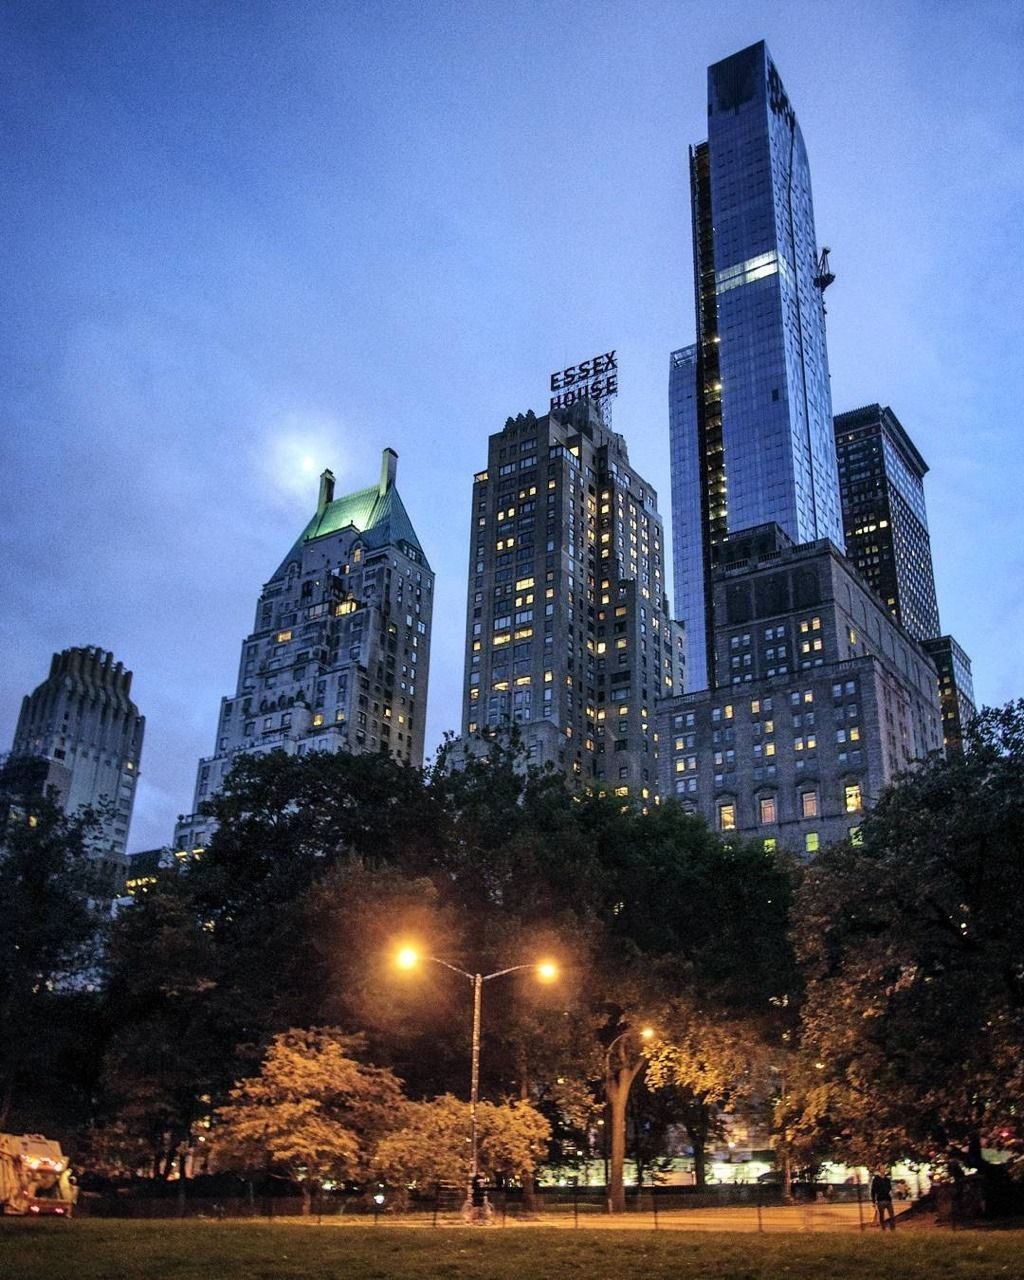 Central Park South By Chandle-like-candle Ekkor: 2018